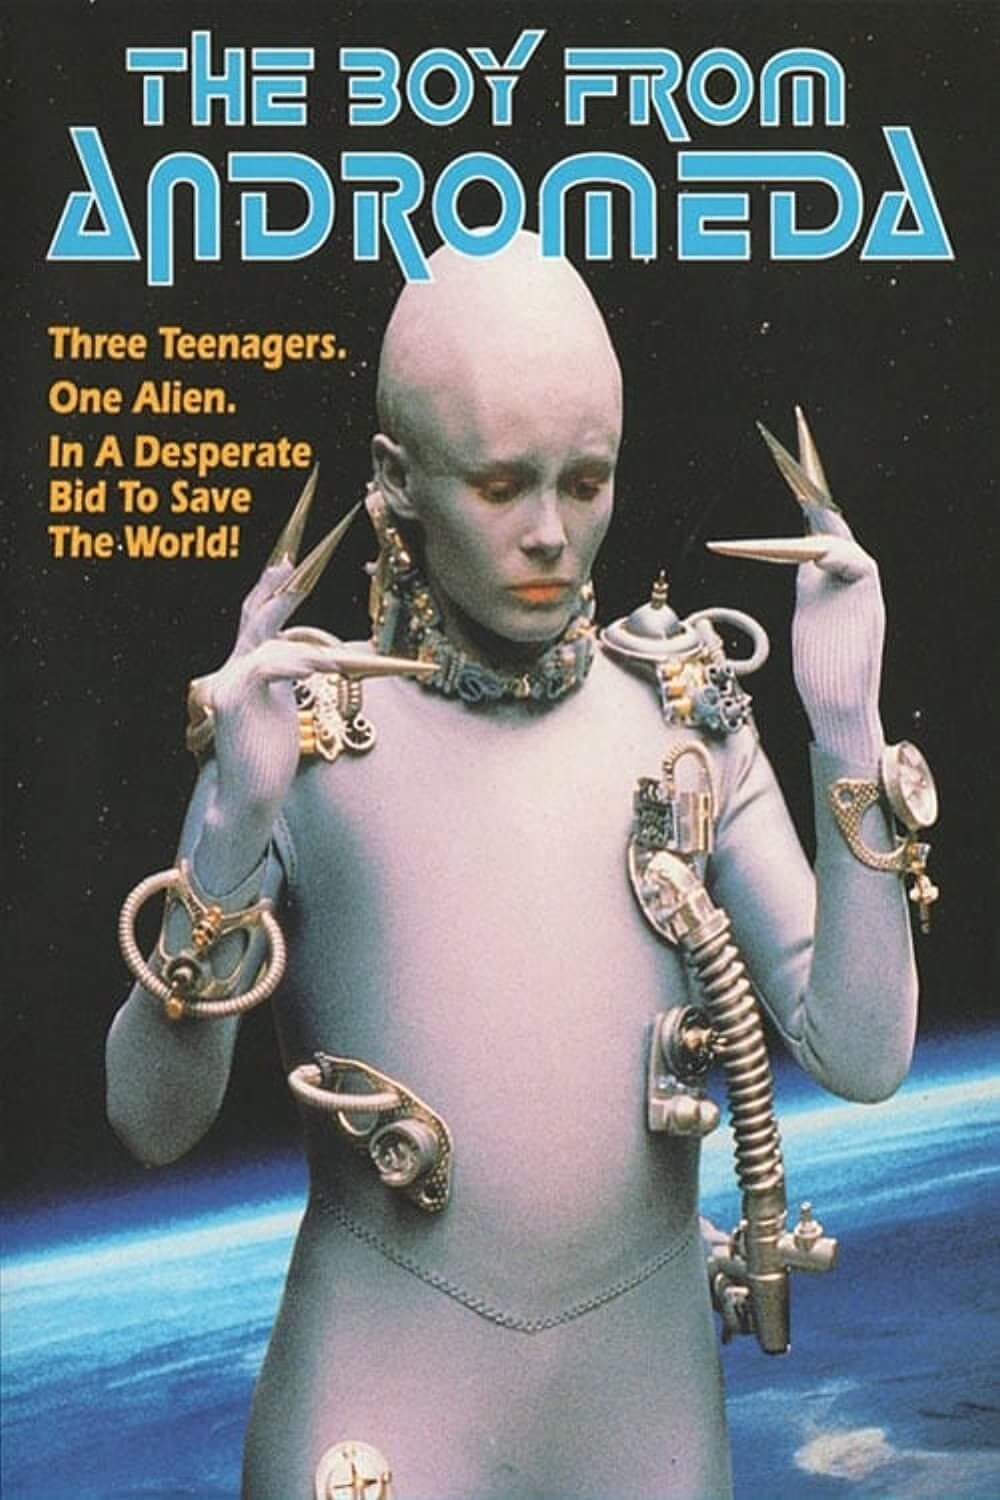 The Boy from Andromeda TV Shows About Spacecraft